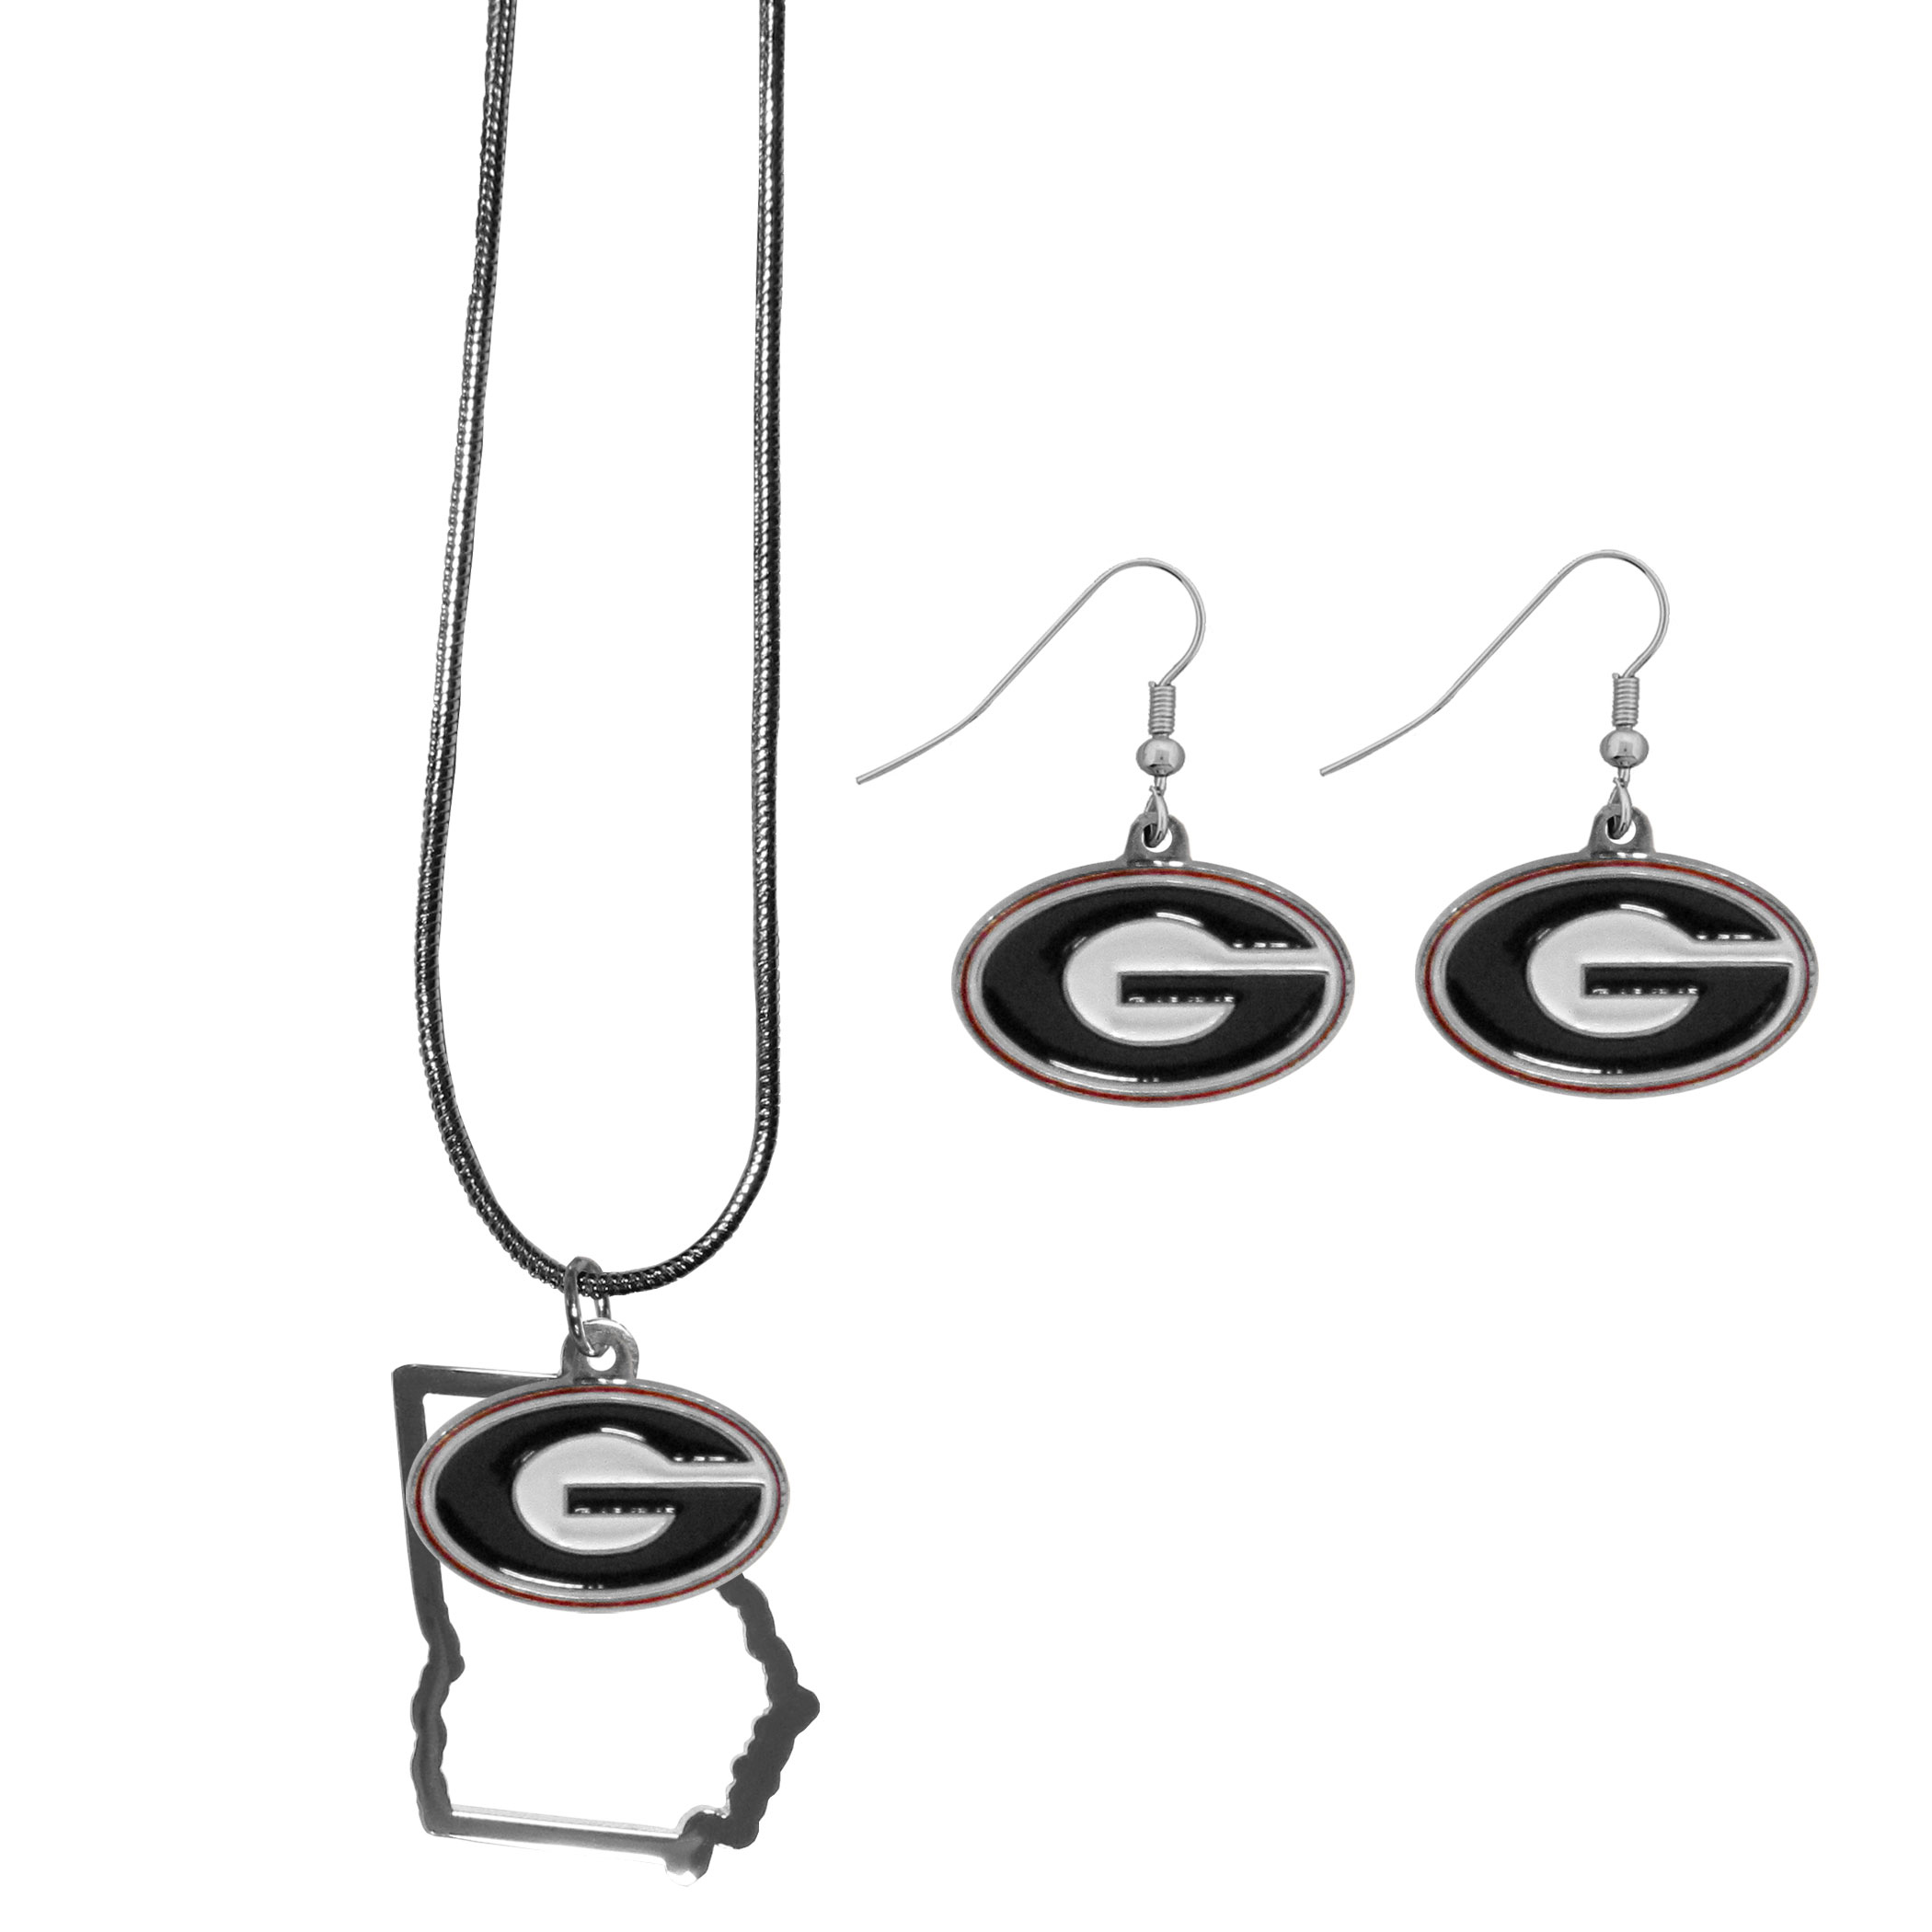 Georgia Bulldogs Dangle Earrings and State Necklace Set - Get in on the trend! State themes are a trend that just keeps getting more popular and this jewelry set takes the state style and give it a sporty twist with a Georgia Bulldogs necklace that features an Arizona state outline charm paired with a beautiful team charm and matching team charm dangle earrings. The earrings feature hypoallergenic fishhook posts that are nickel free.